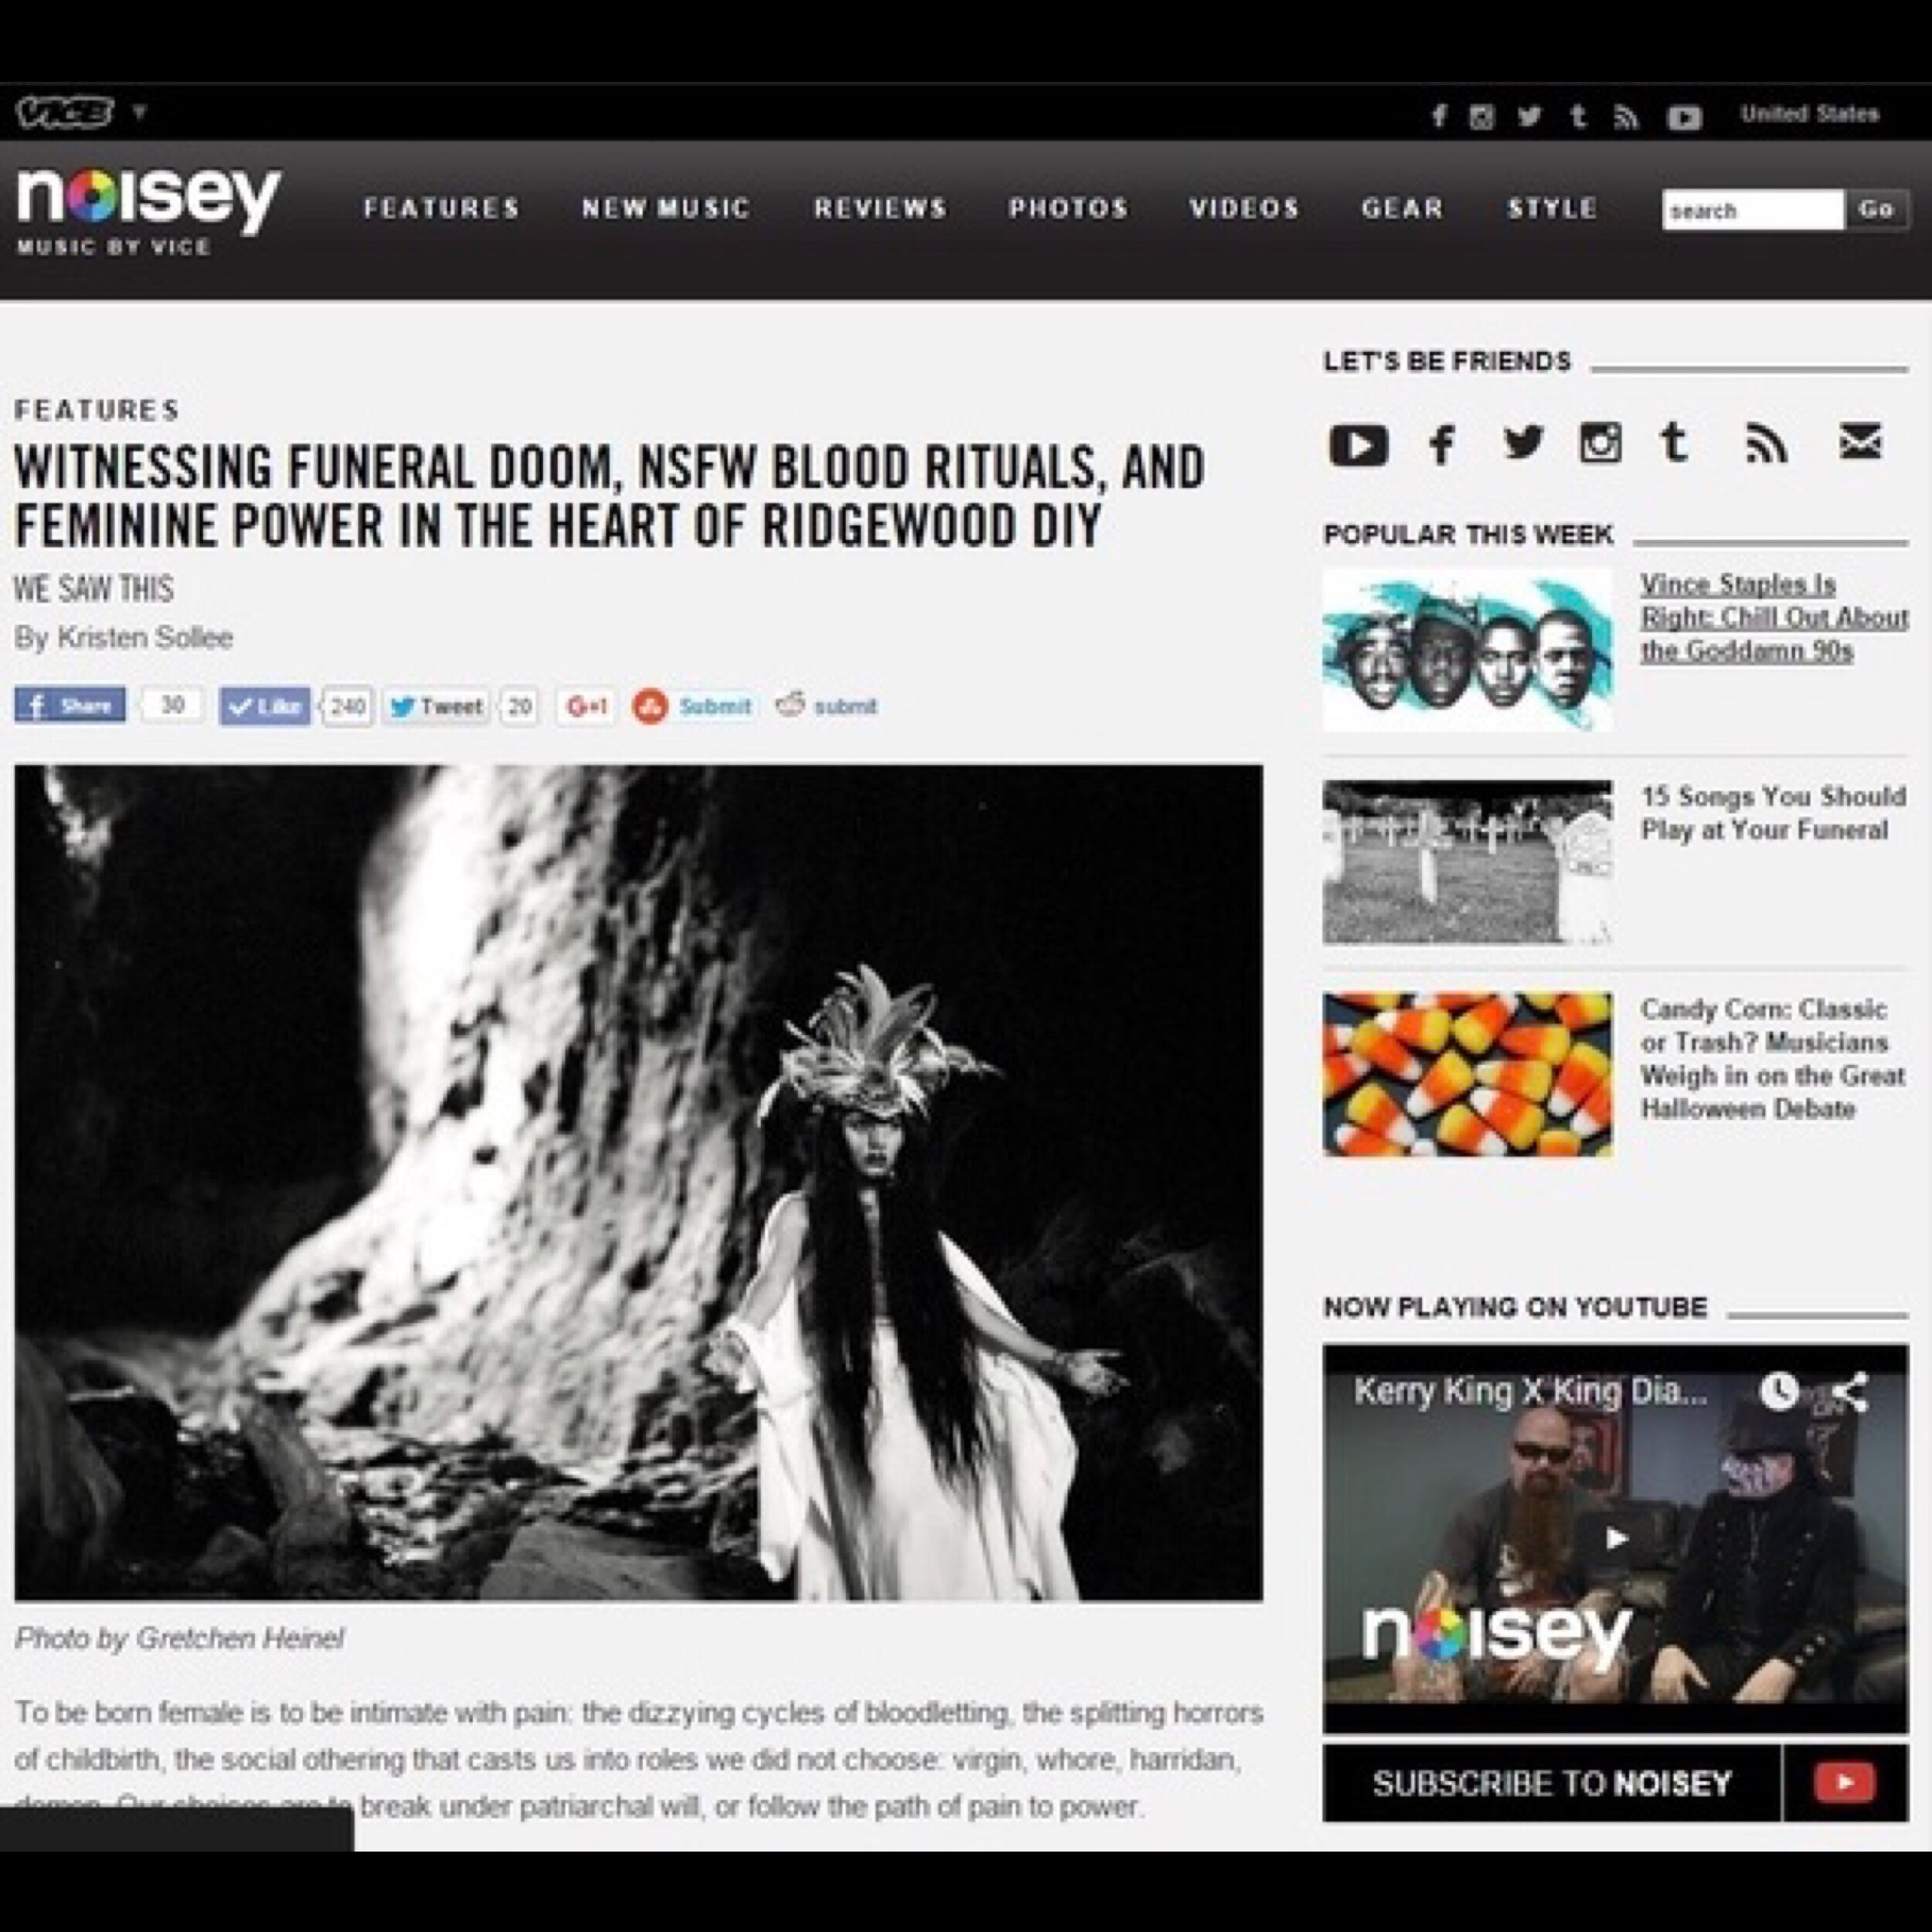 Noisey Music By Vice 26.10.2015